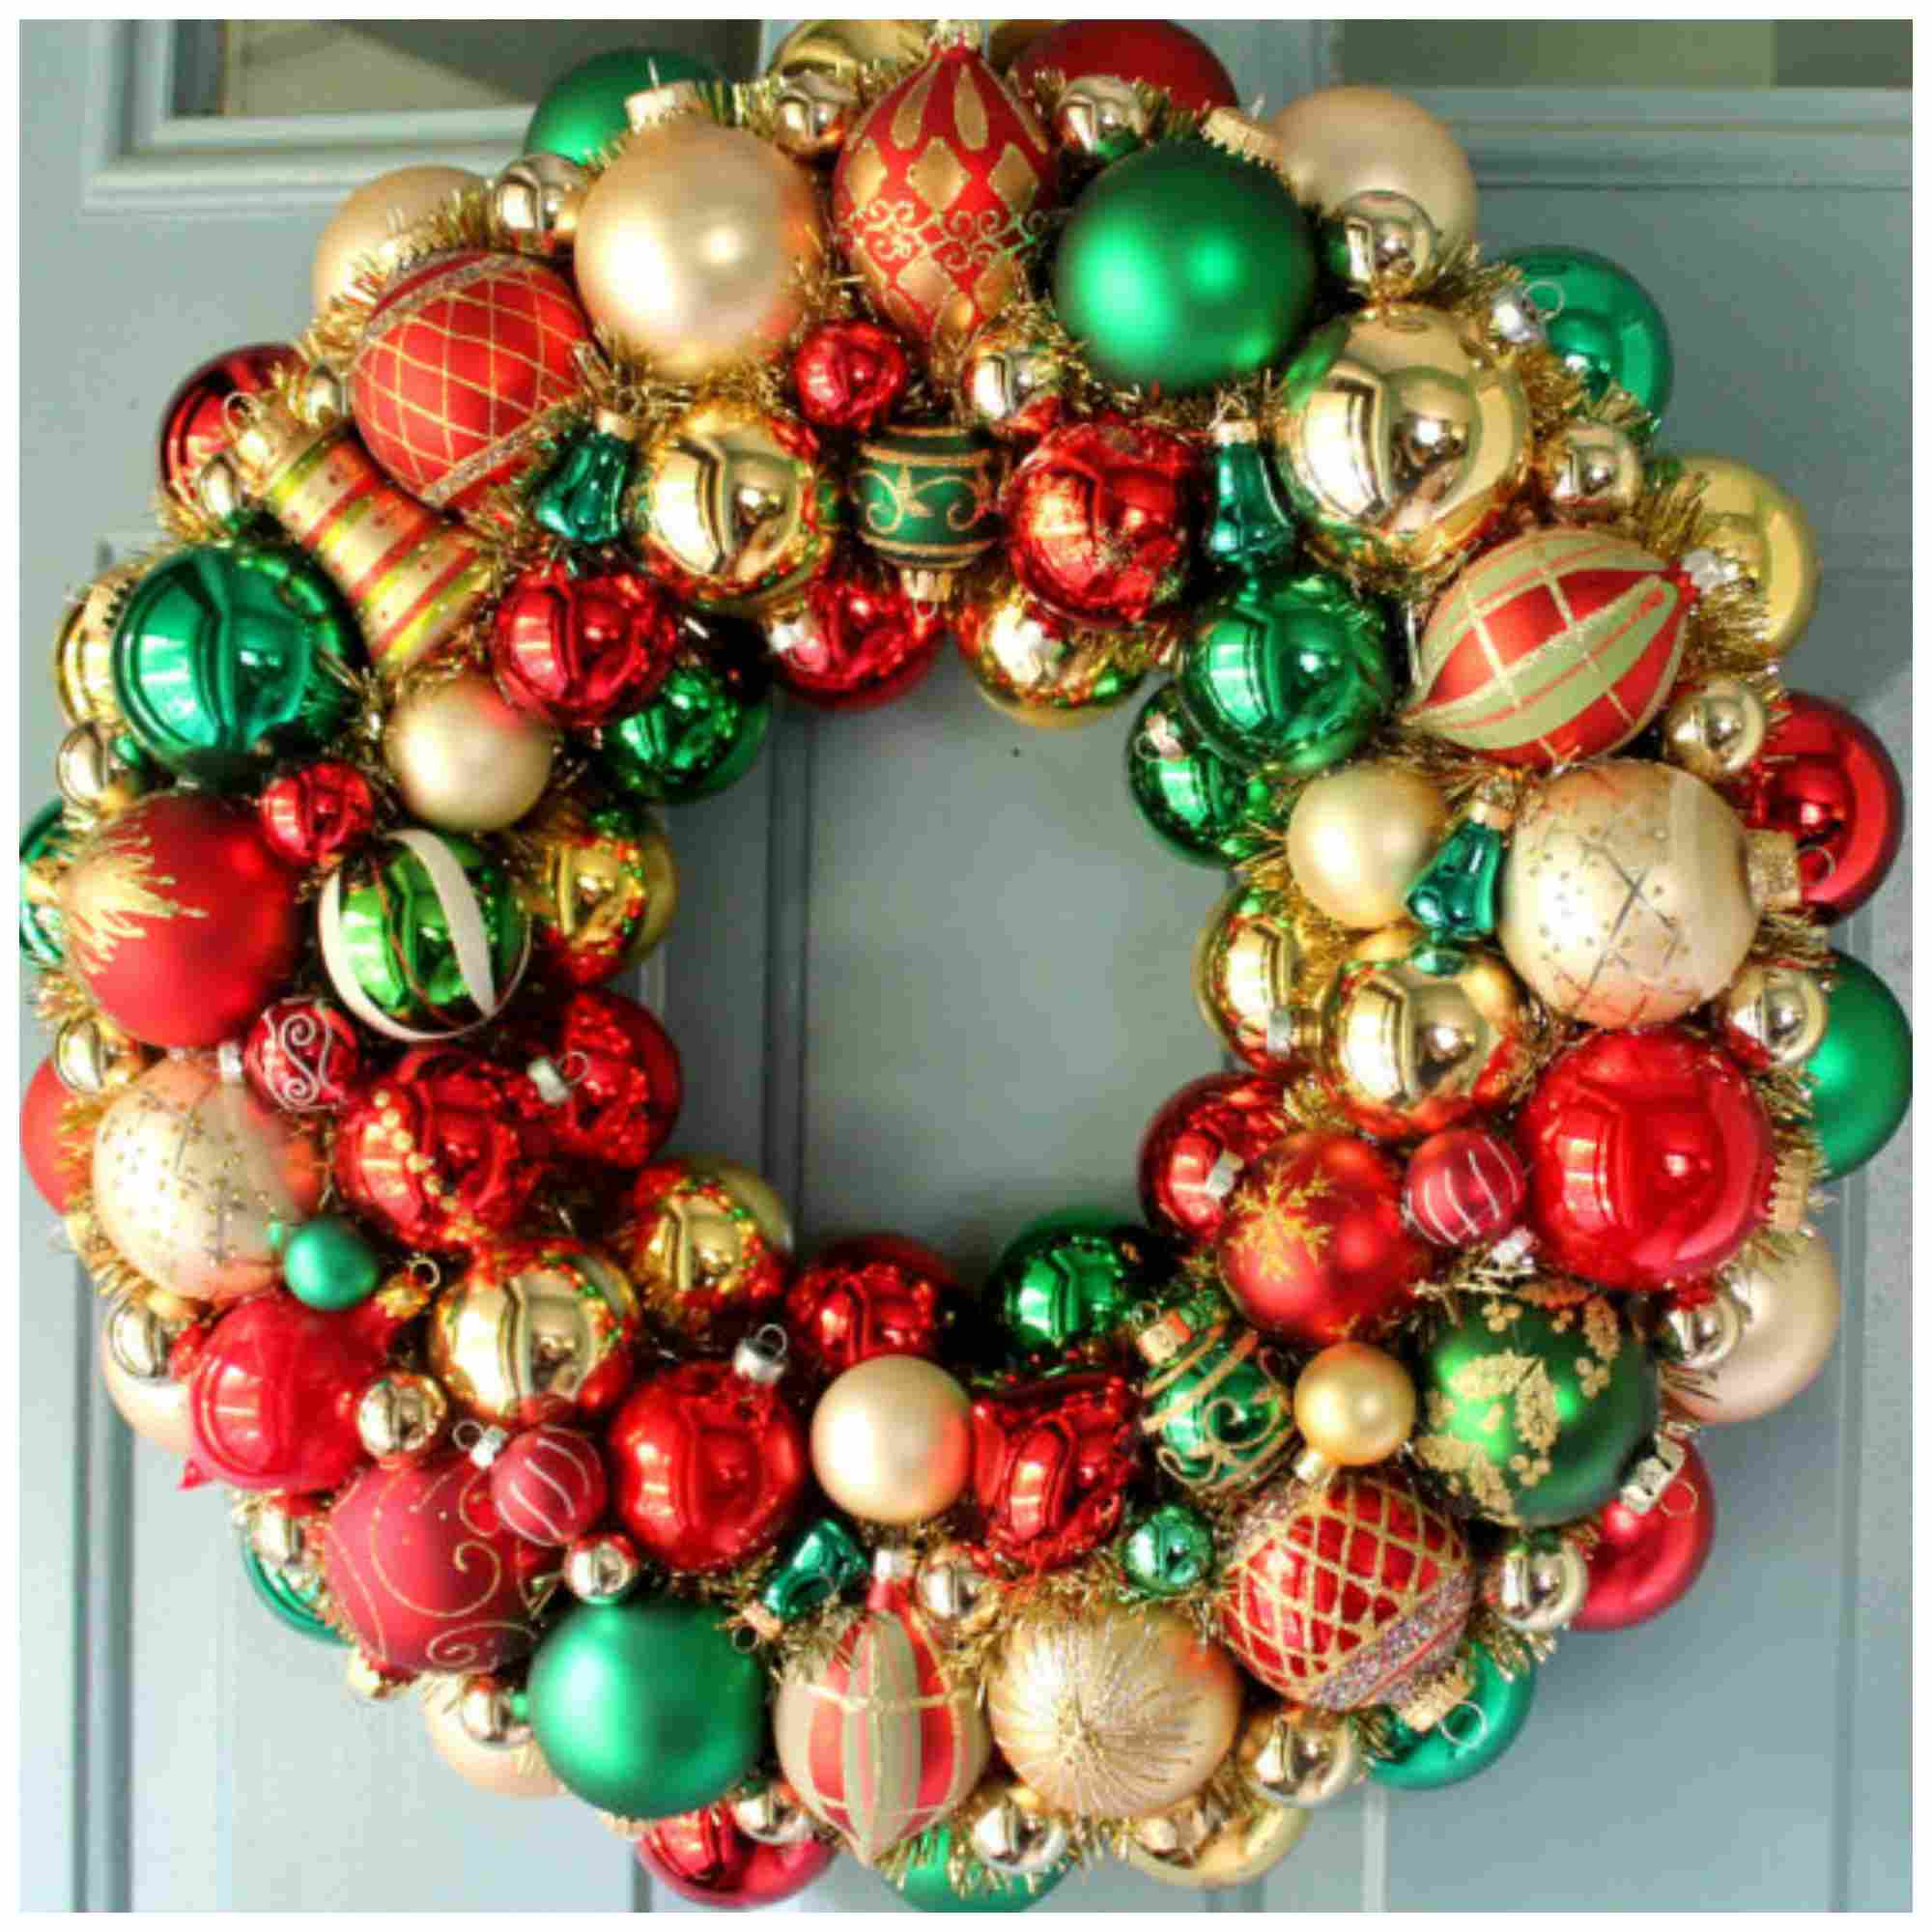 decorate a wreath ornament wreath